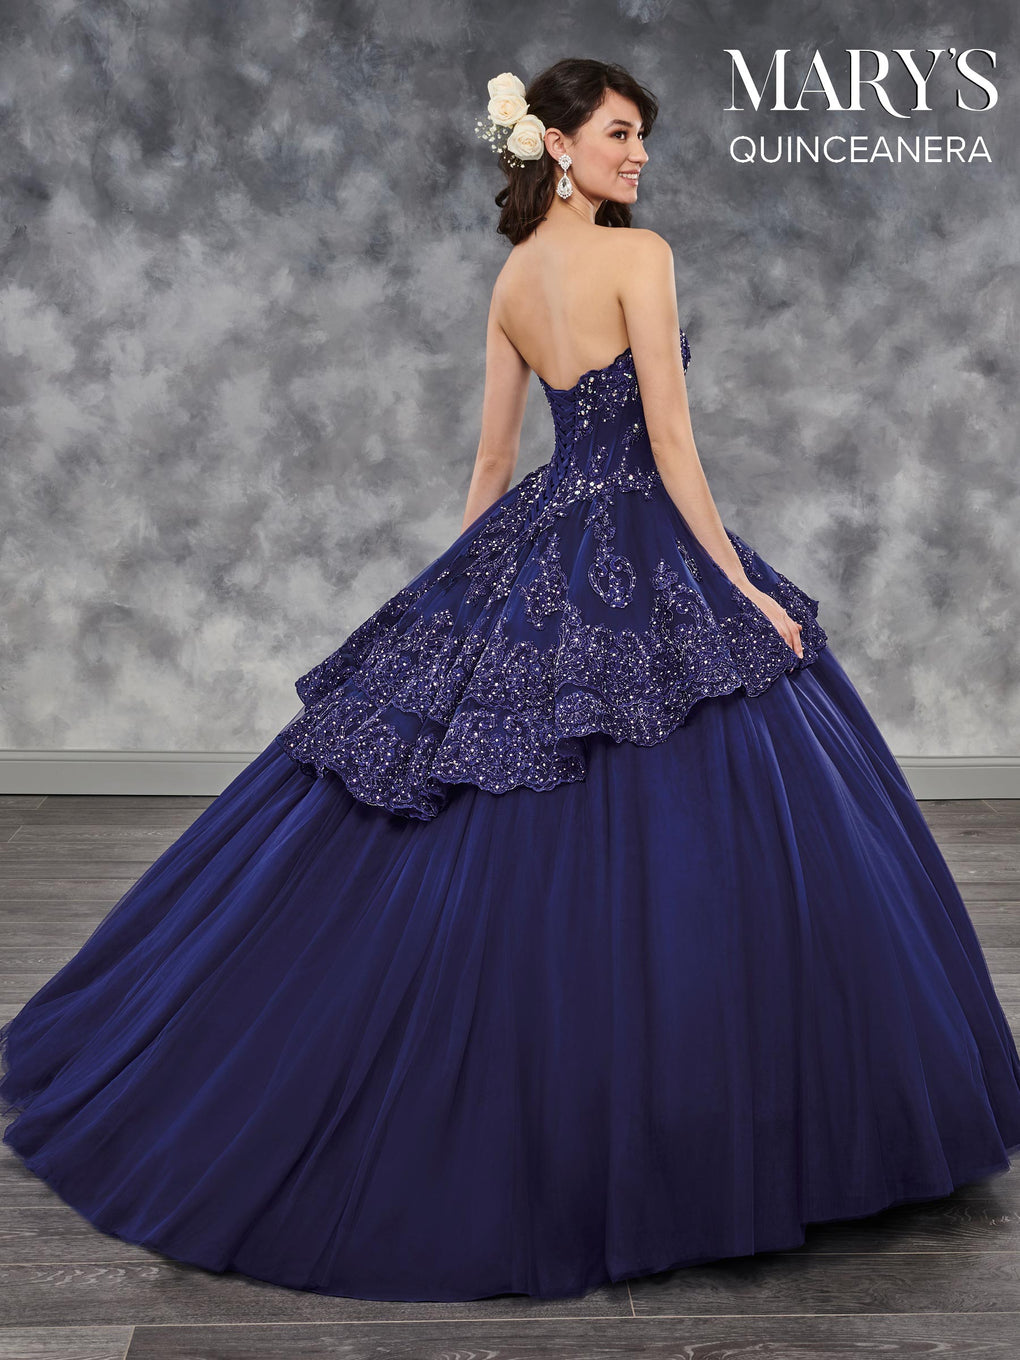 Marys Quinceanera Dresses in Indigo, Red, or White Color